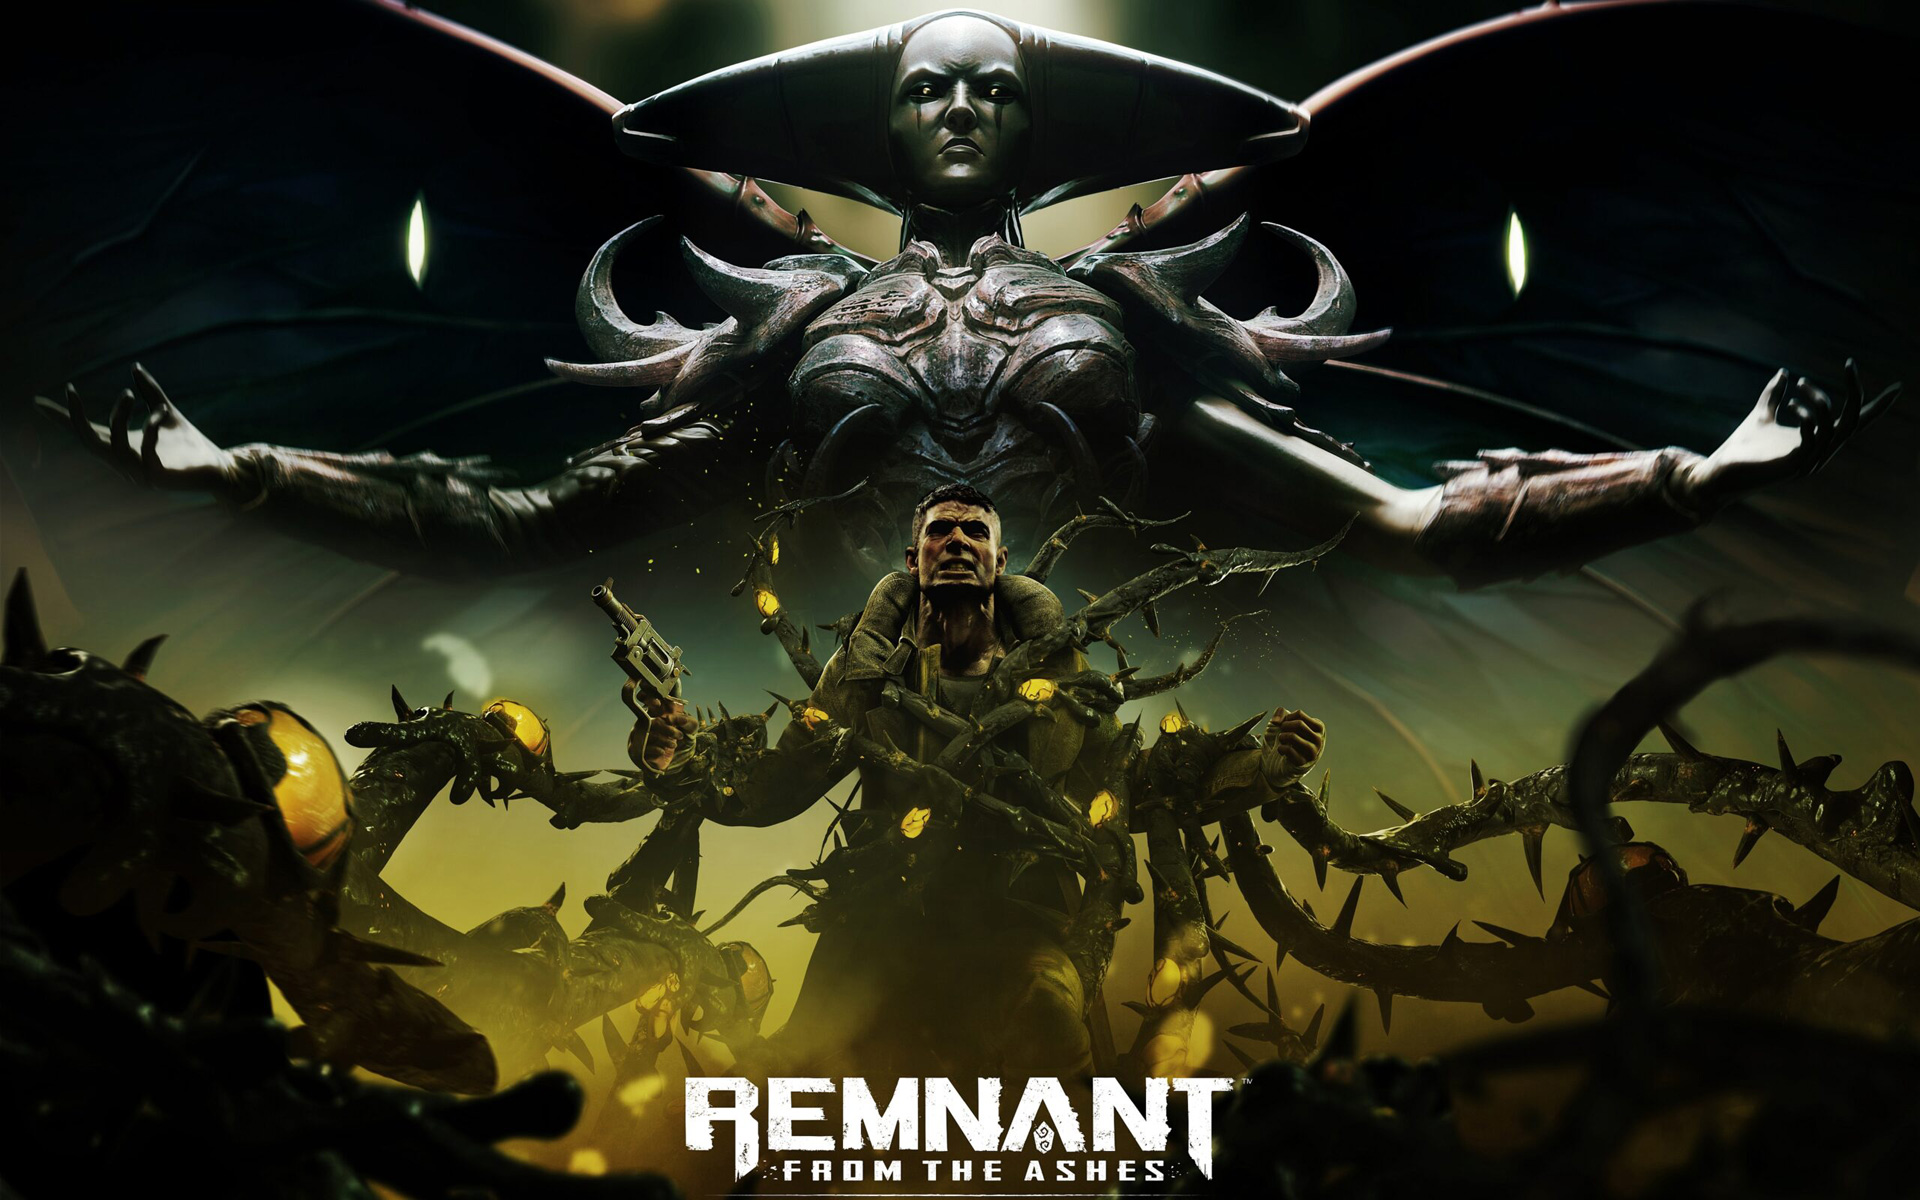 Remnant: From the Ashes Wallpaper in 1920x1200